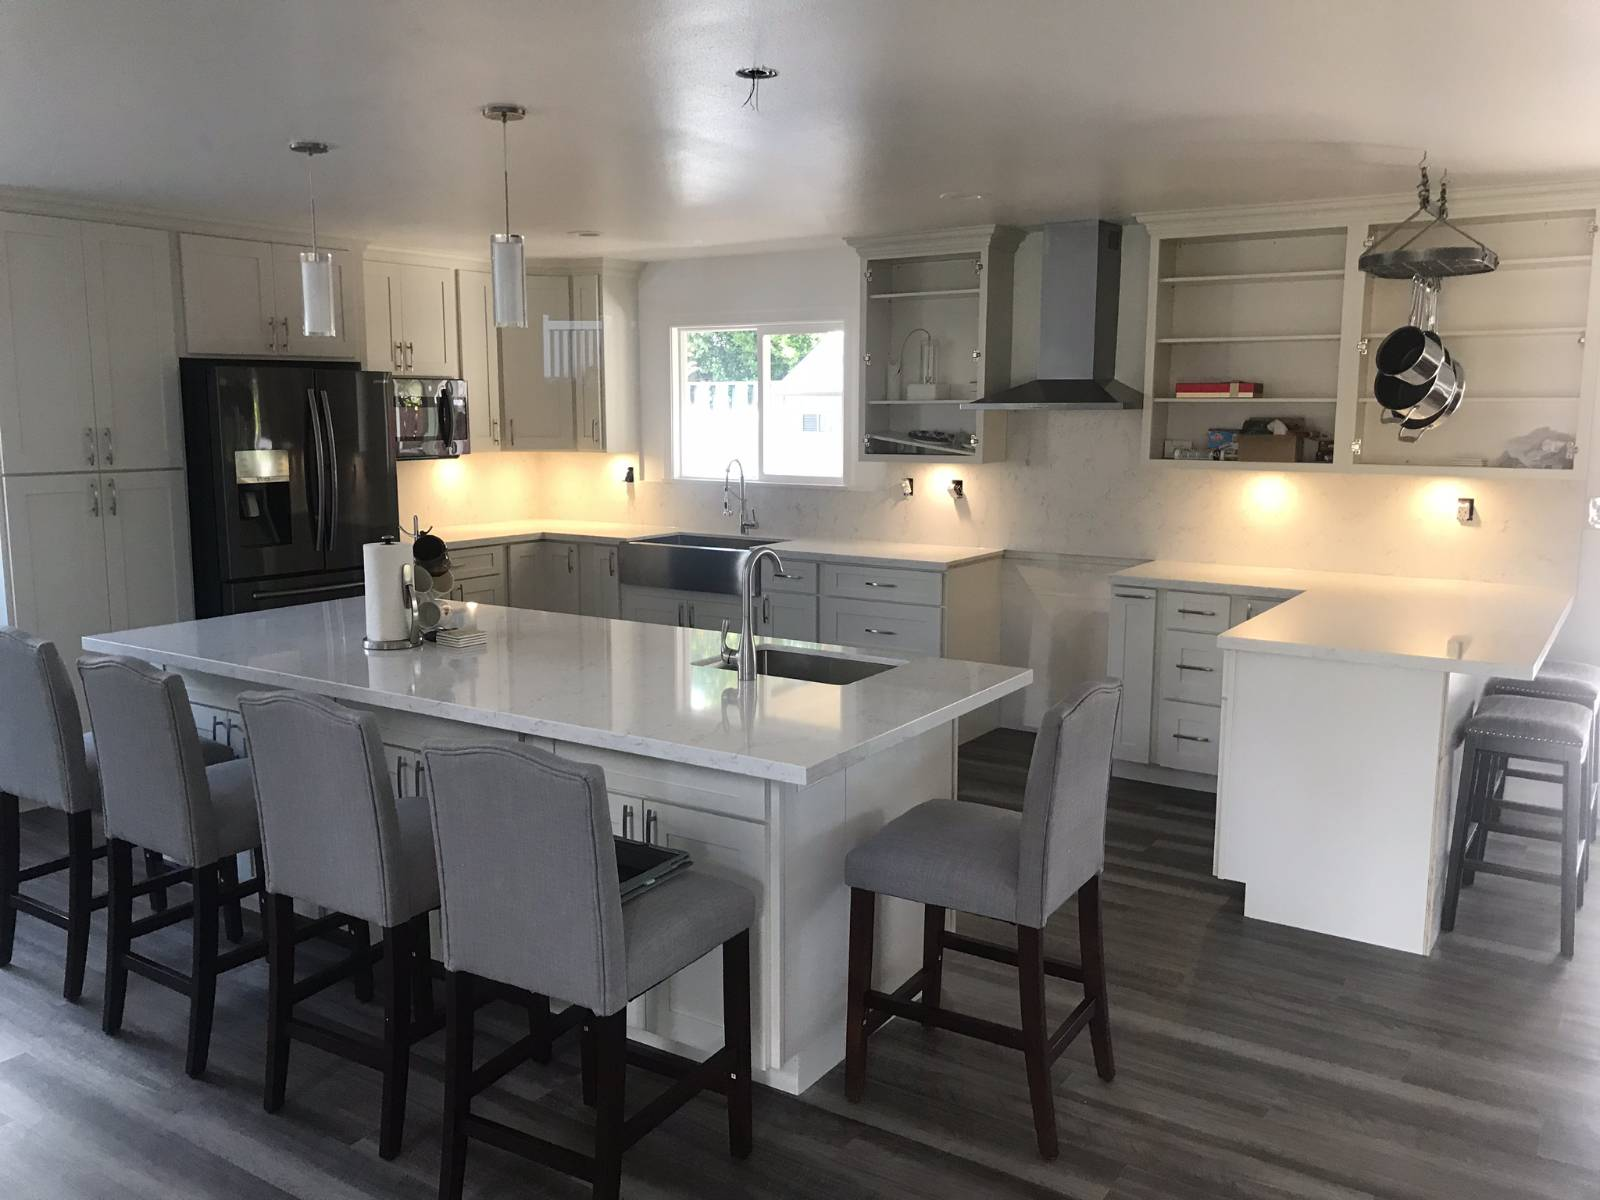 Mililani Residence - Island and kitchen counter tops with bar stool overhang and full-height back splash.